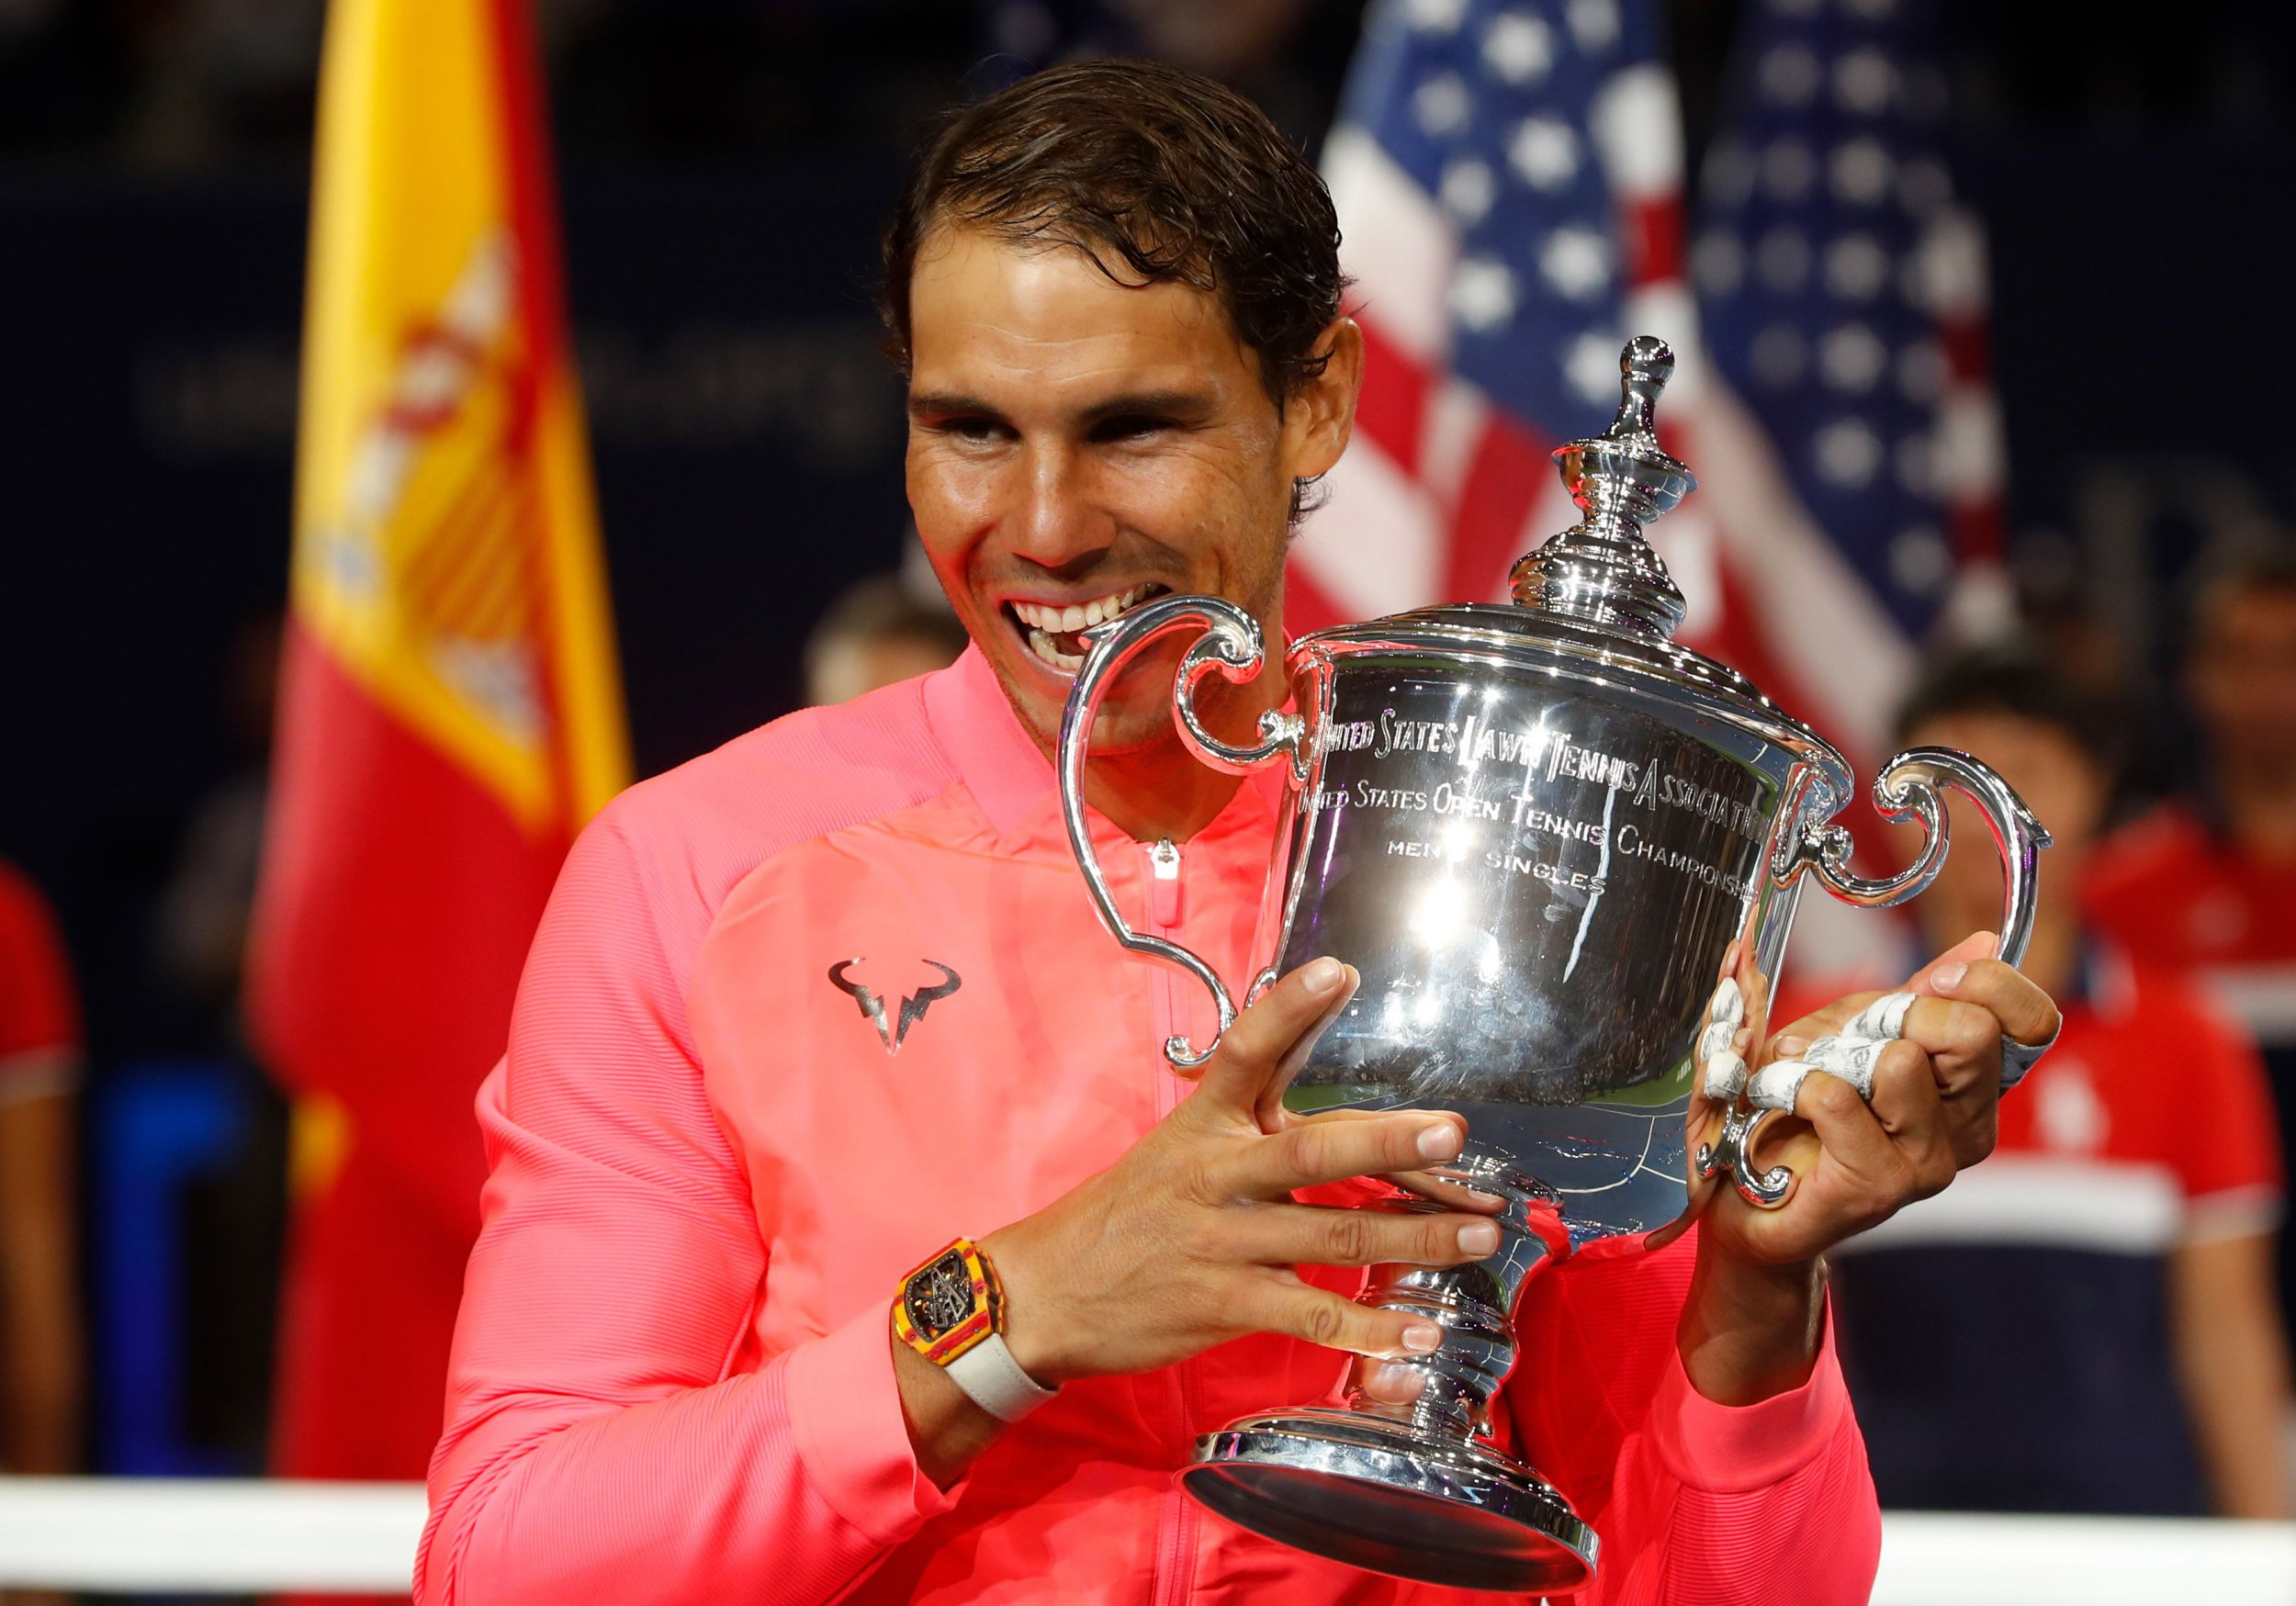 Rafael Nadal pays touching tribute to Uncle Toni after winning the US Open